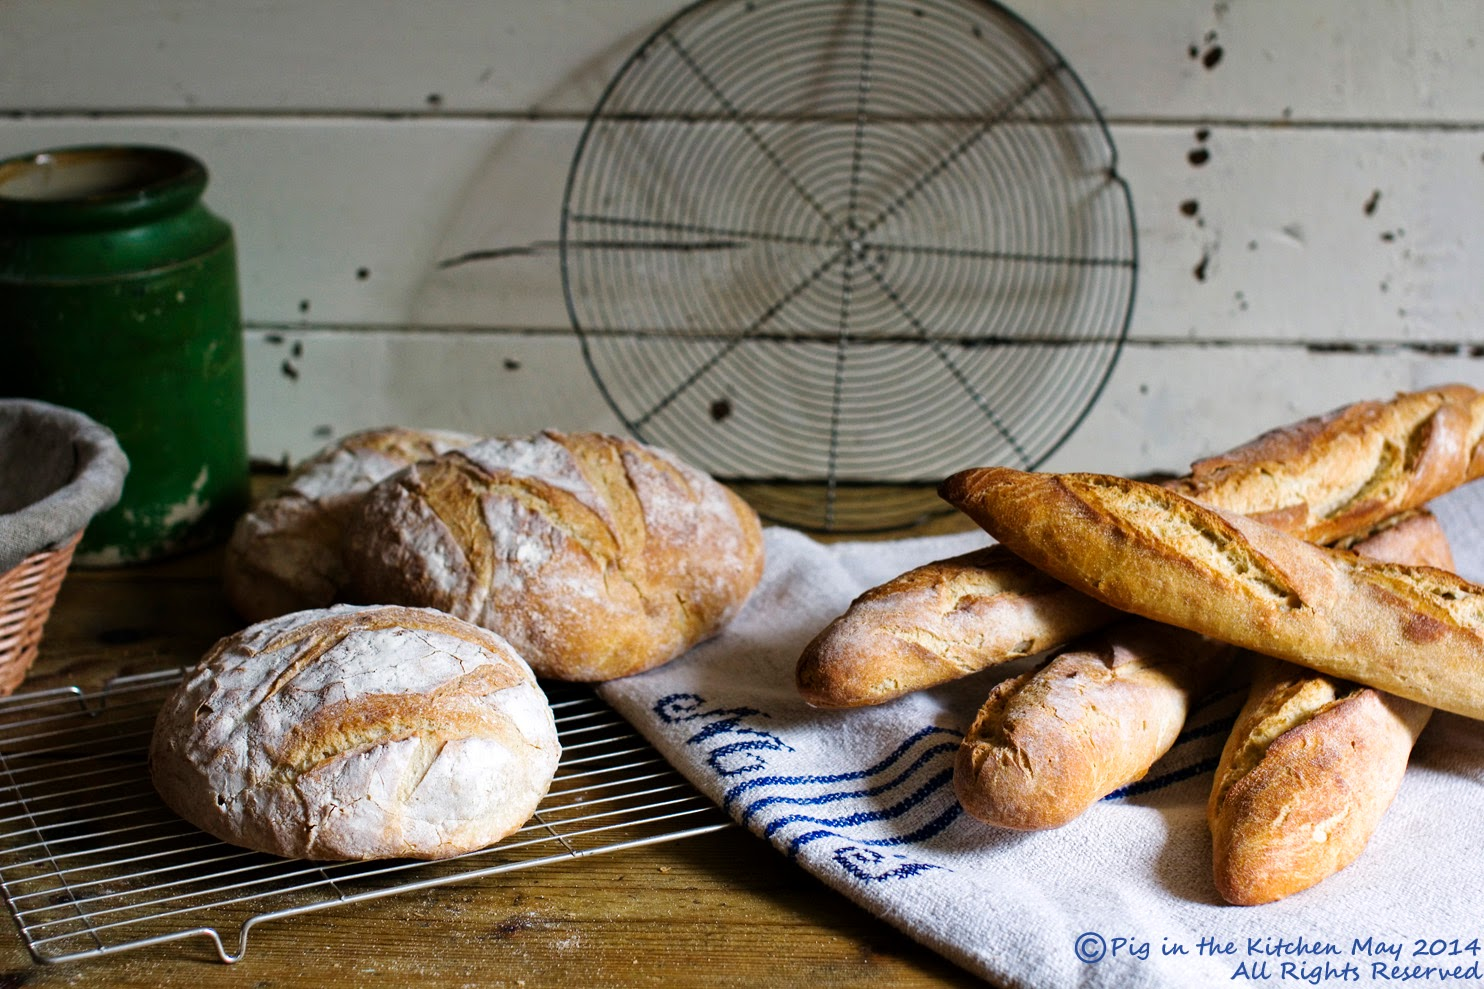 Food photography course, Vanessa Kimbell